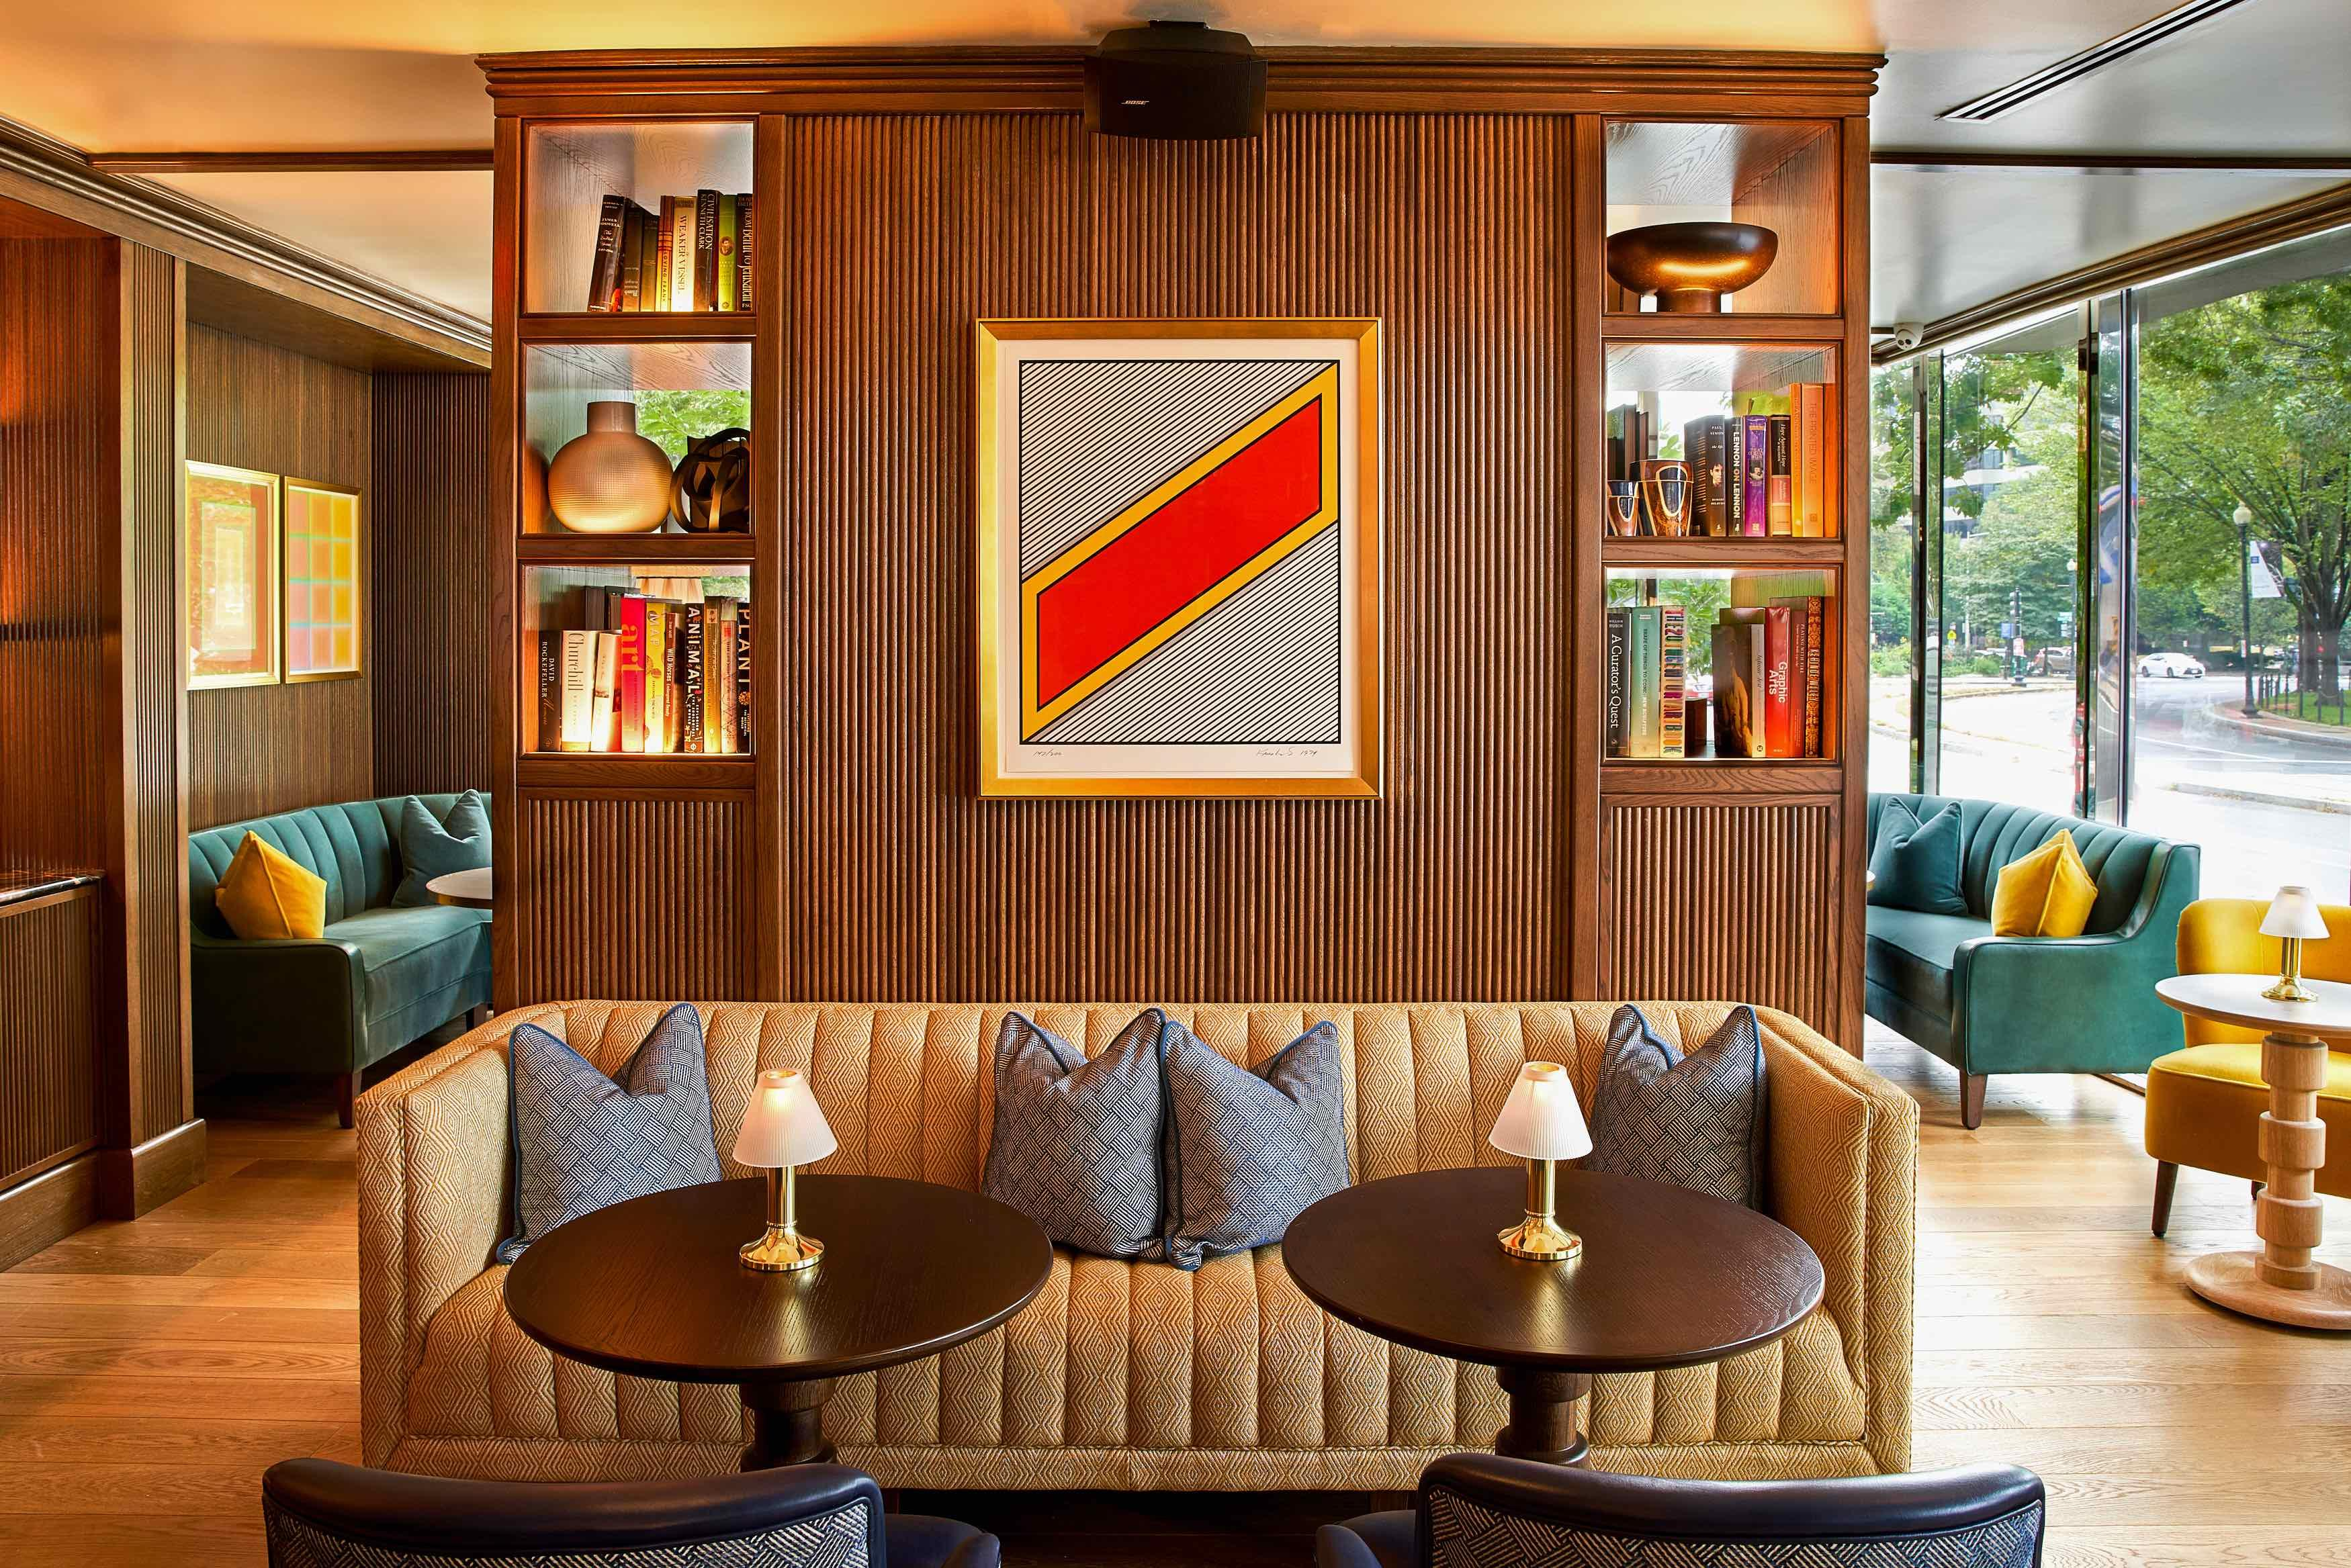 The parent company for The Dupont Circle Hotel and its sleek lounge The Doyle is headquartered in Ireland, and assistant bar manager Dominik Lenikowski oversees an ever-growing list of brown spirits from the Emerald Isle. (Image: Courtesy The Dupont Circle Hotel)